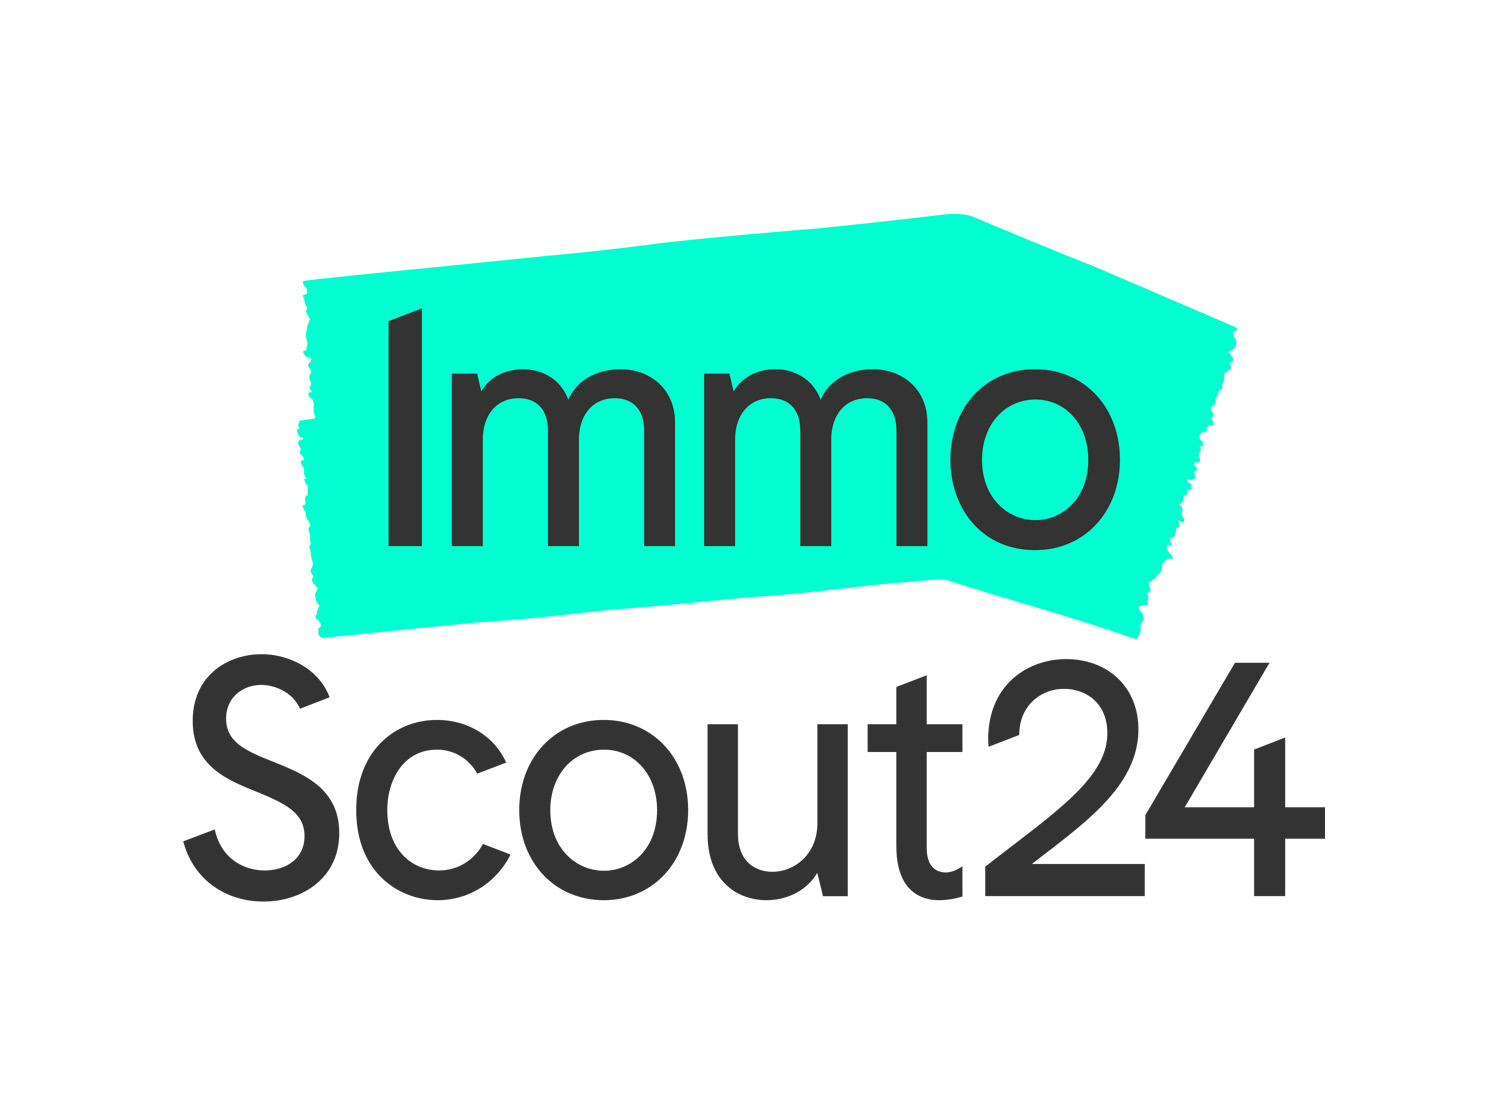 logo Partner immoscout